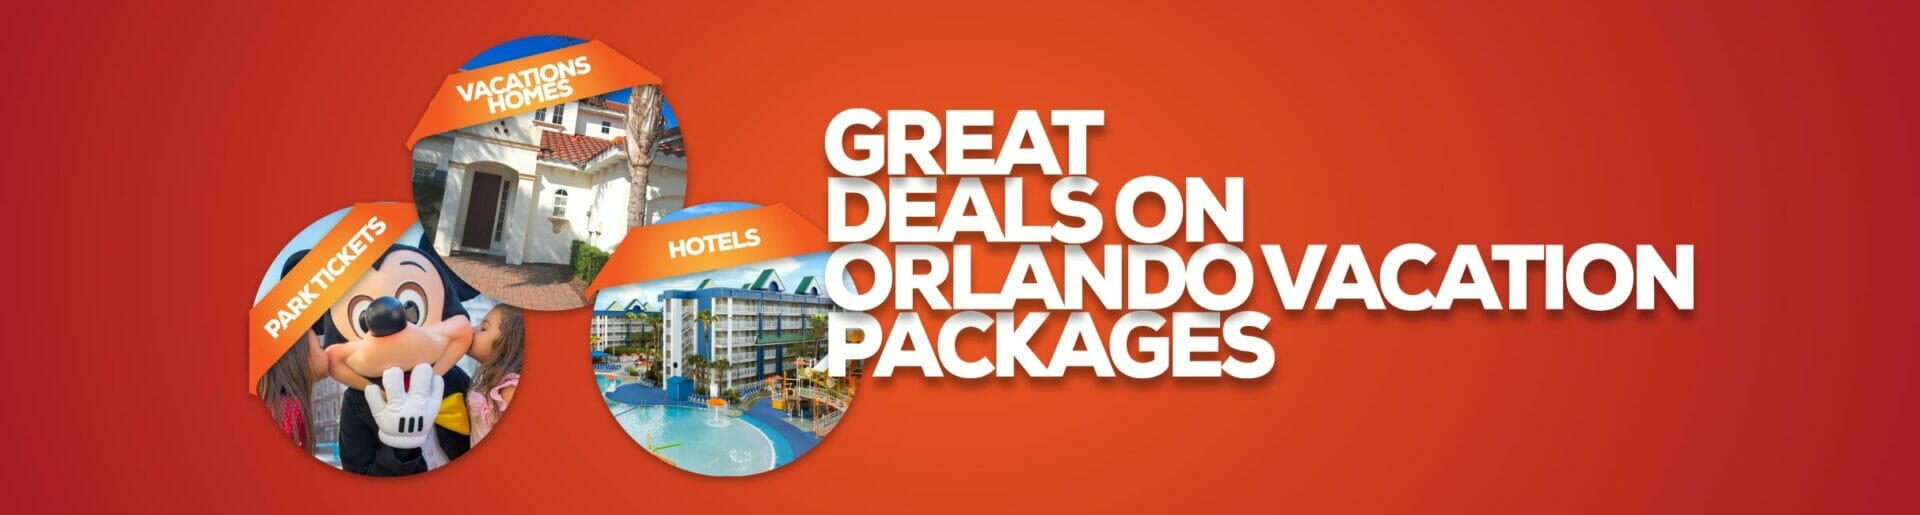 Get-great-deals-on-orlando-vacation-packages